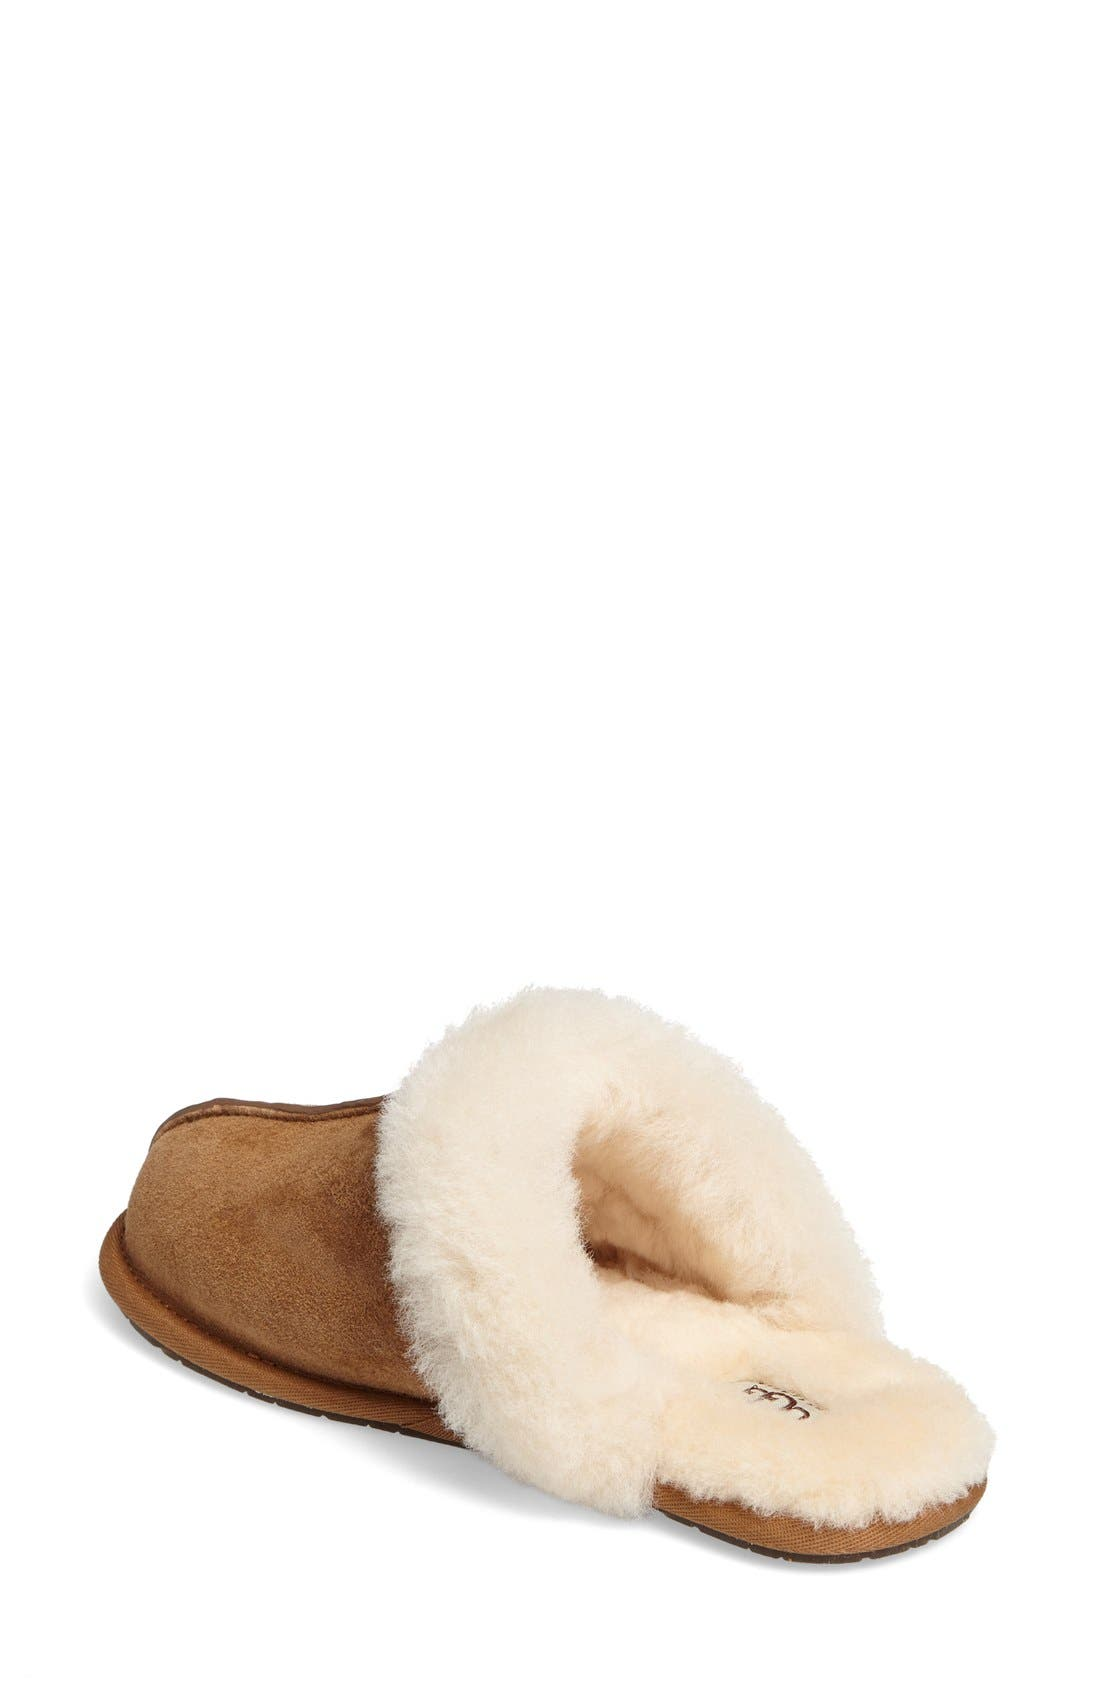 Alternate Image 2  - UGG® Scuffette II Slipper (Women)